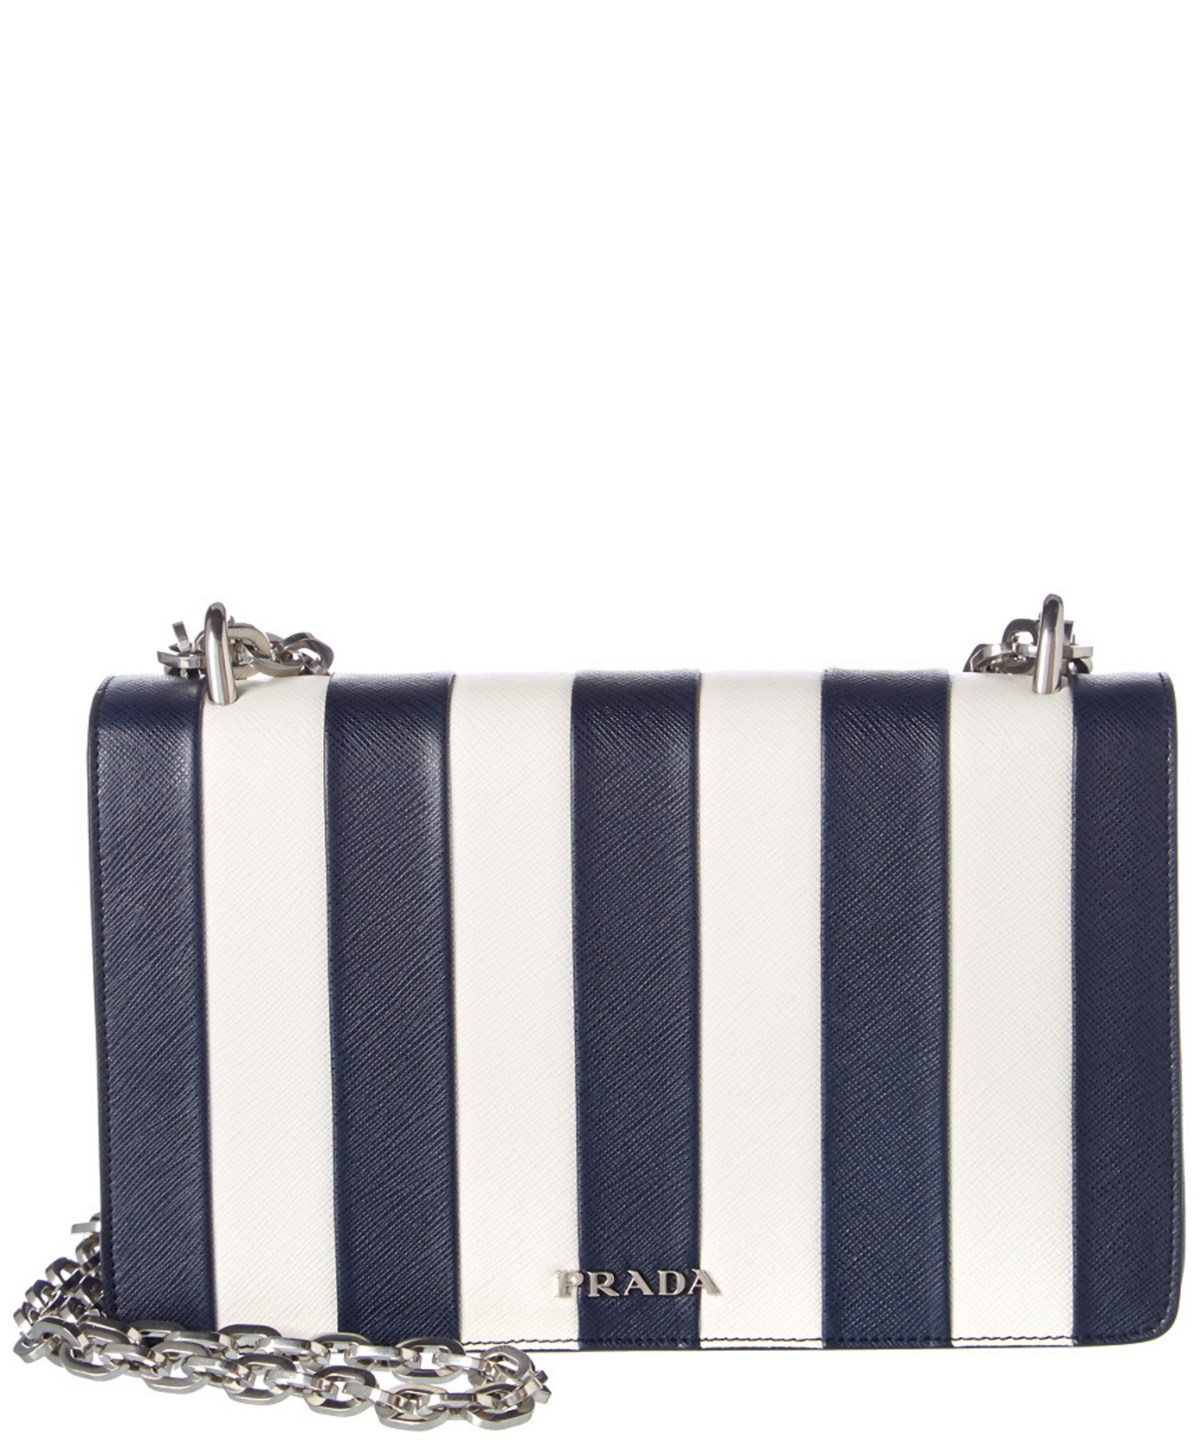 b455a0c8de28 Prada Striped Baltico Leather Chain Strap Shoulder Handbag  In Blue ...